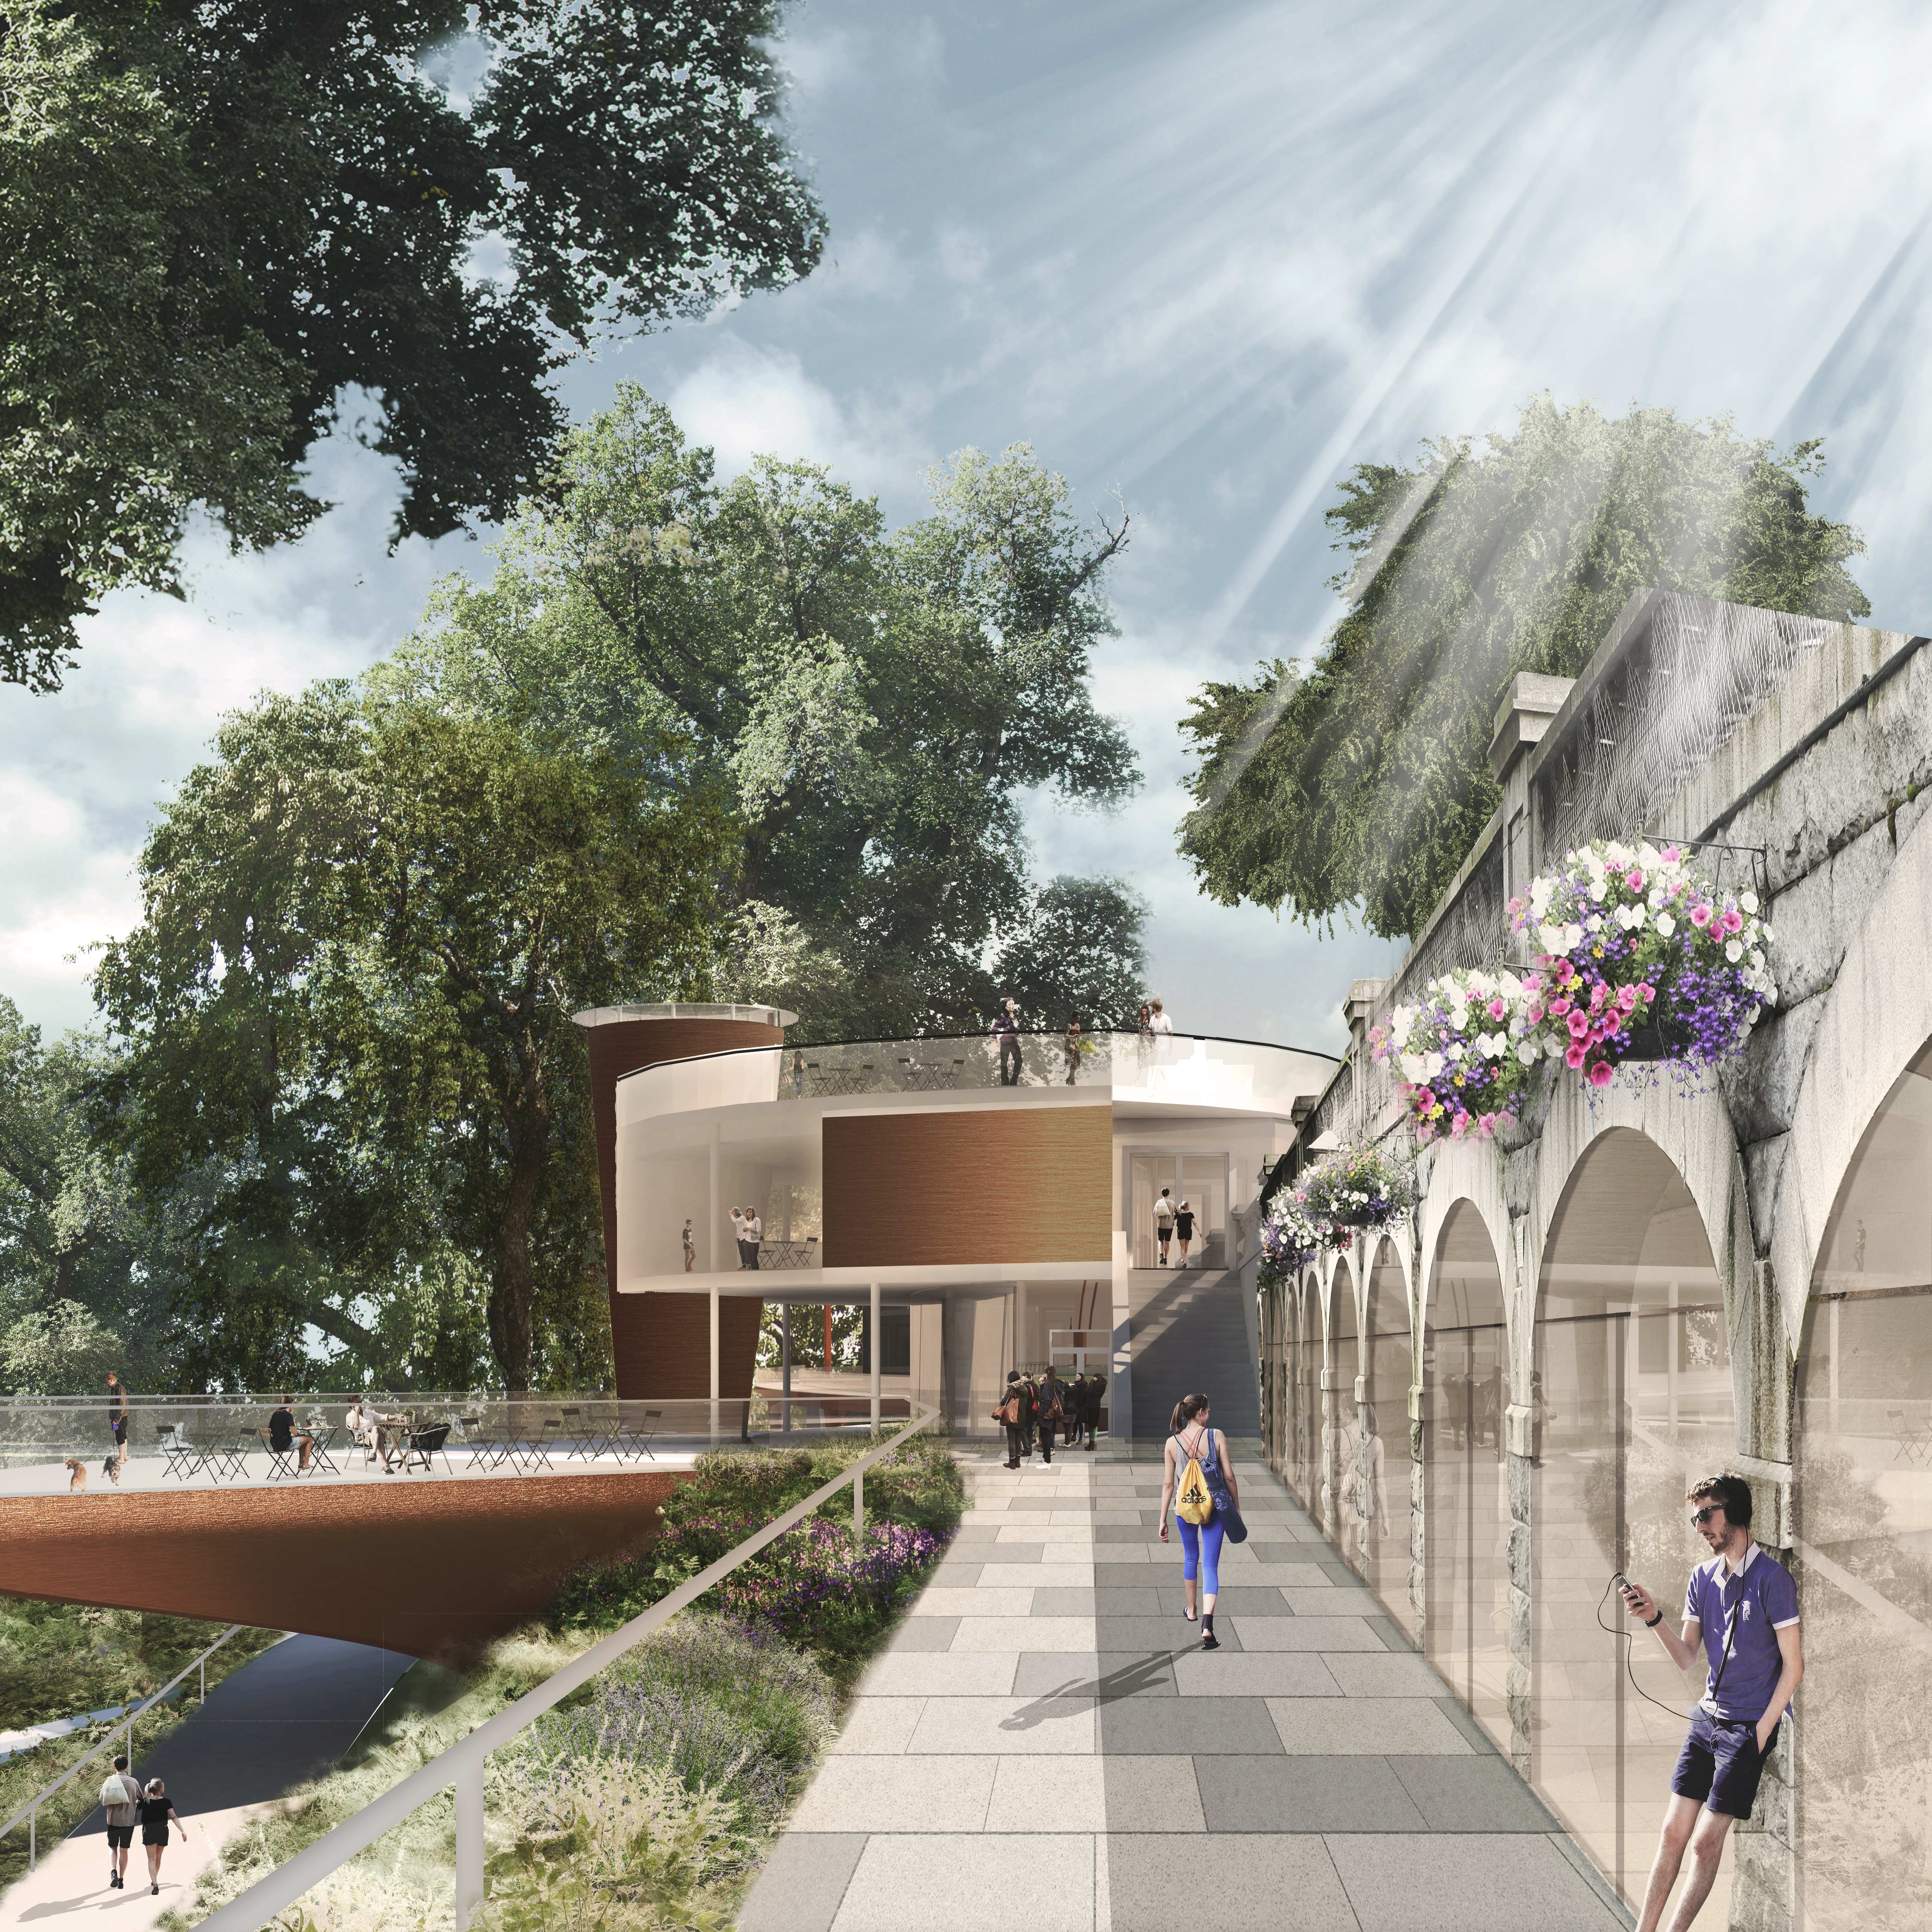 Union Terrace Aberdeen and the Northeast, New £20million proposals for Aberdeen's Union Terrace Gardens ...